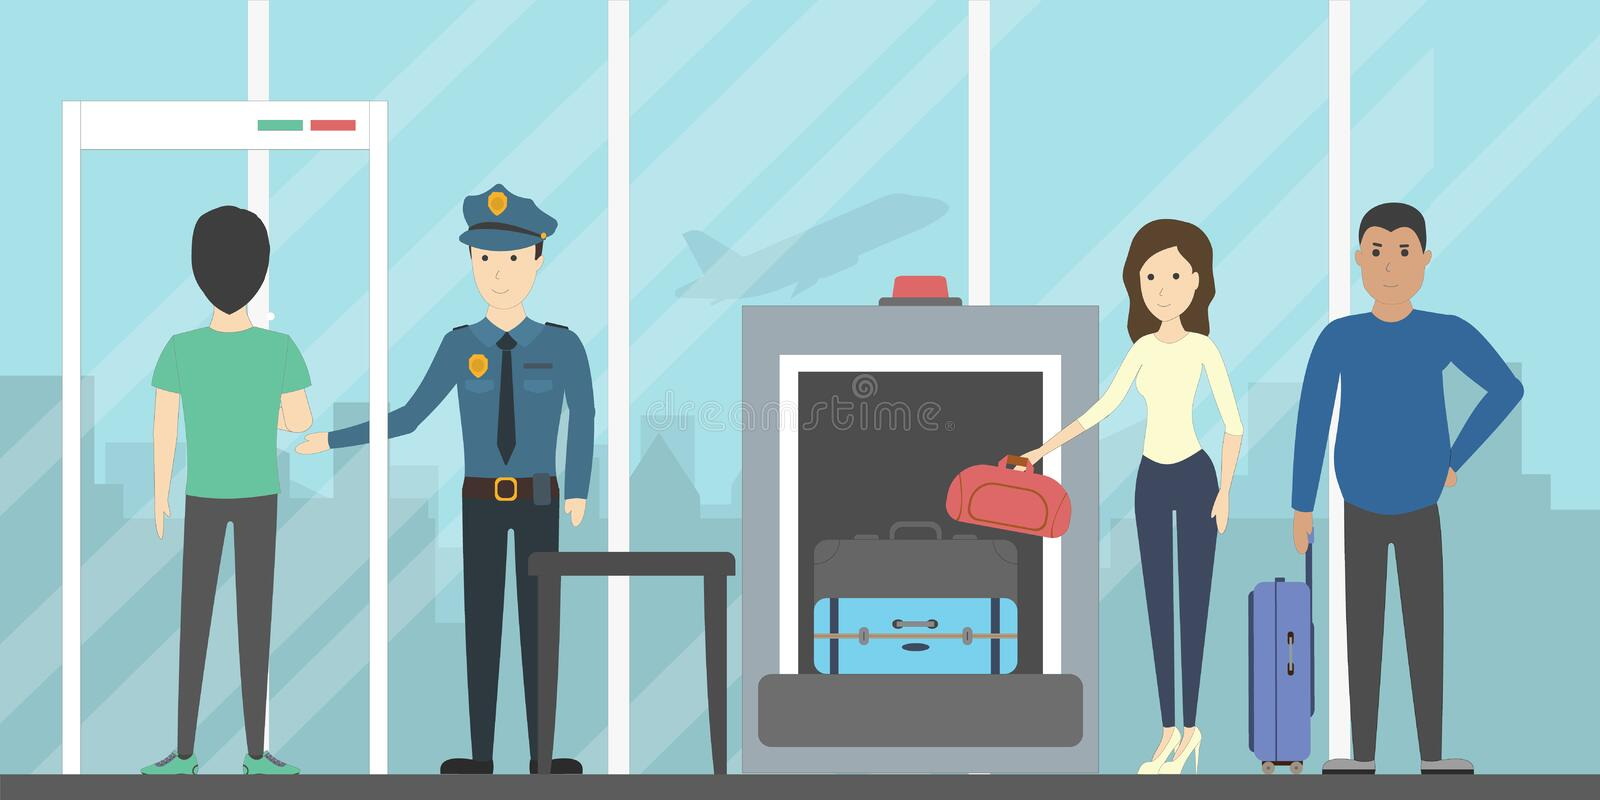 Airport security check. vector illustration